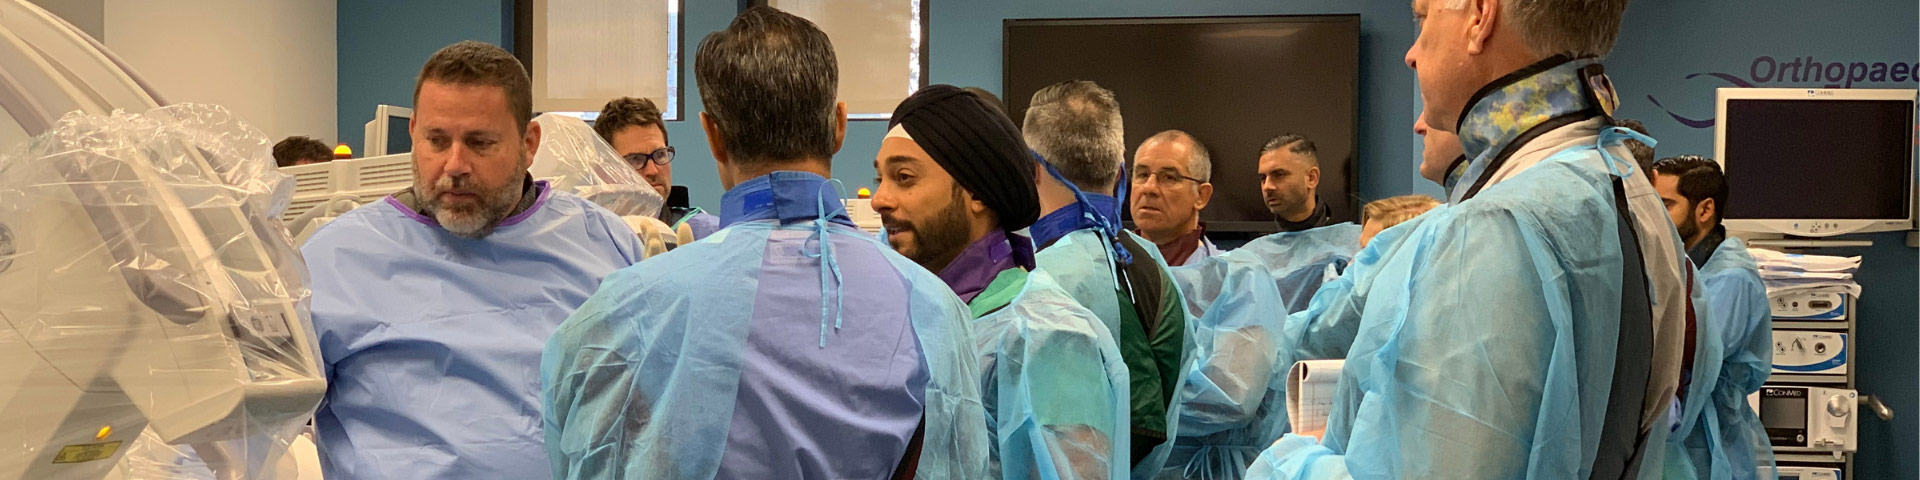 Surgeons gathered to discuss Mild Procedure for spinal stenosis treatment